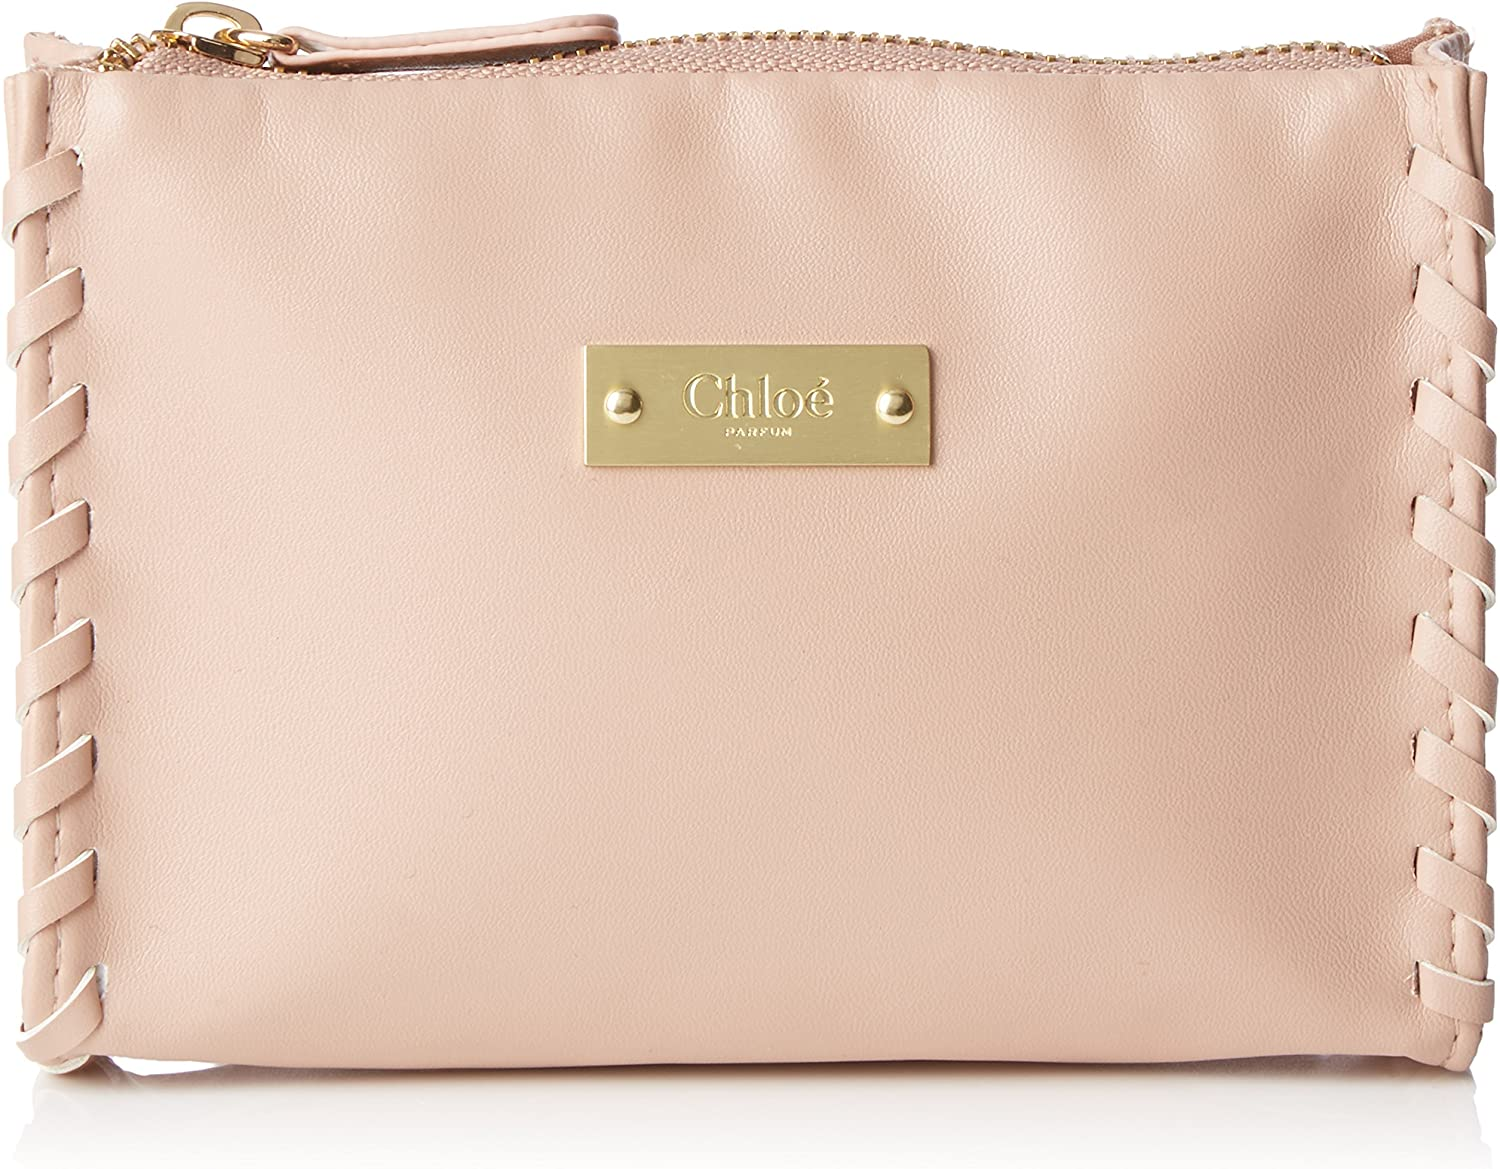 Chloe parfums Small Pouch/Bag Nude/Light Pink Labeled * New & Boxed: Amazon.es: Electrónica